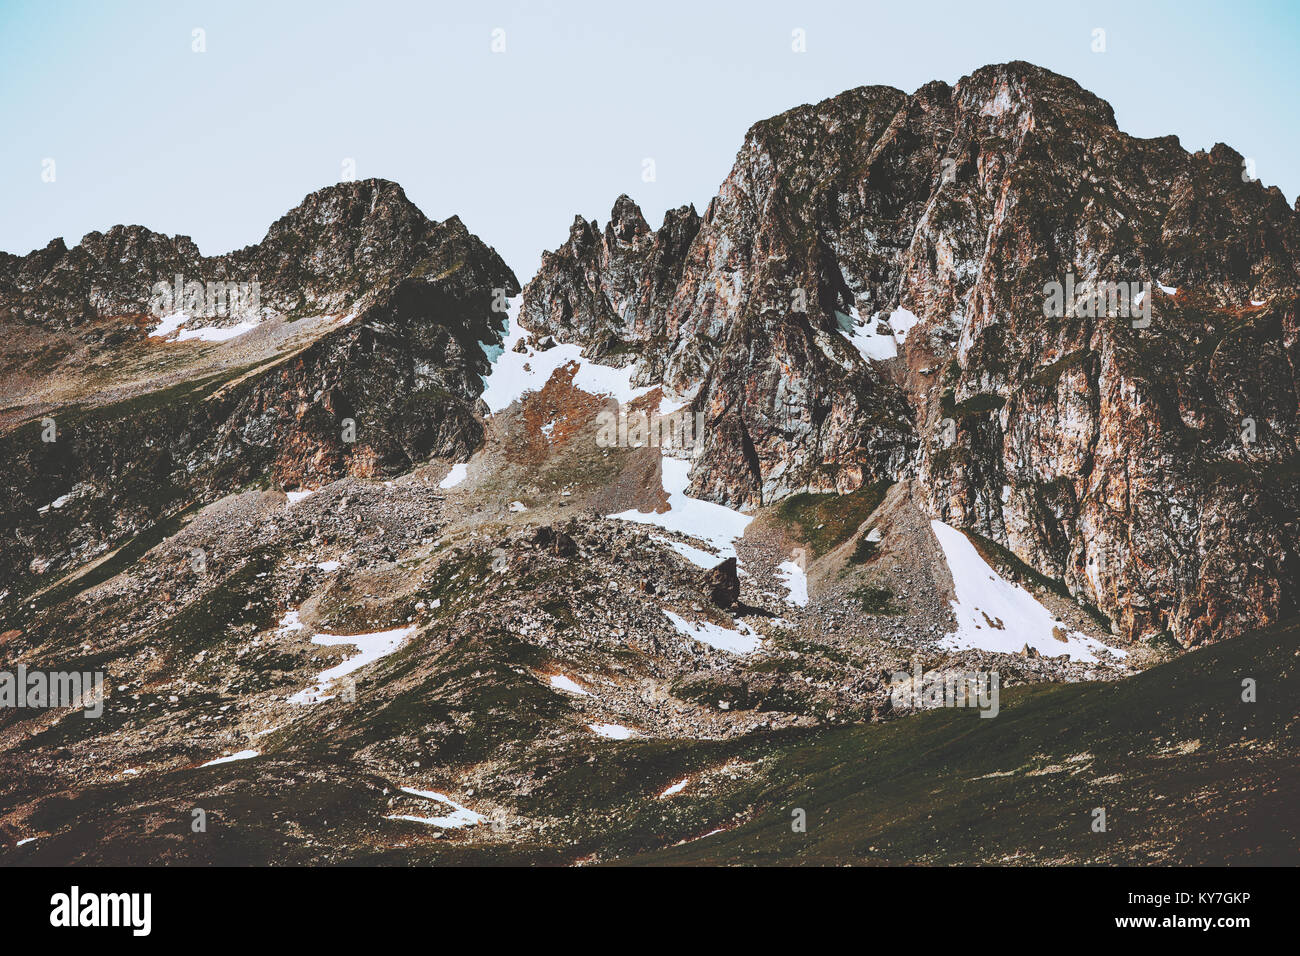 Rocky Mountains Landscape Summer Travel wild nature scenery - Stock Image